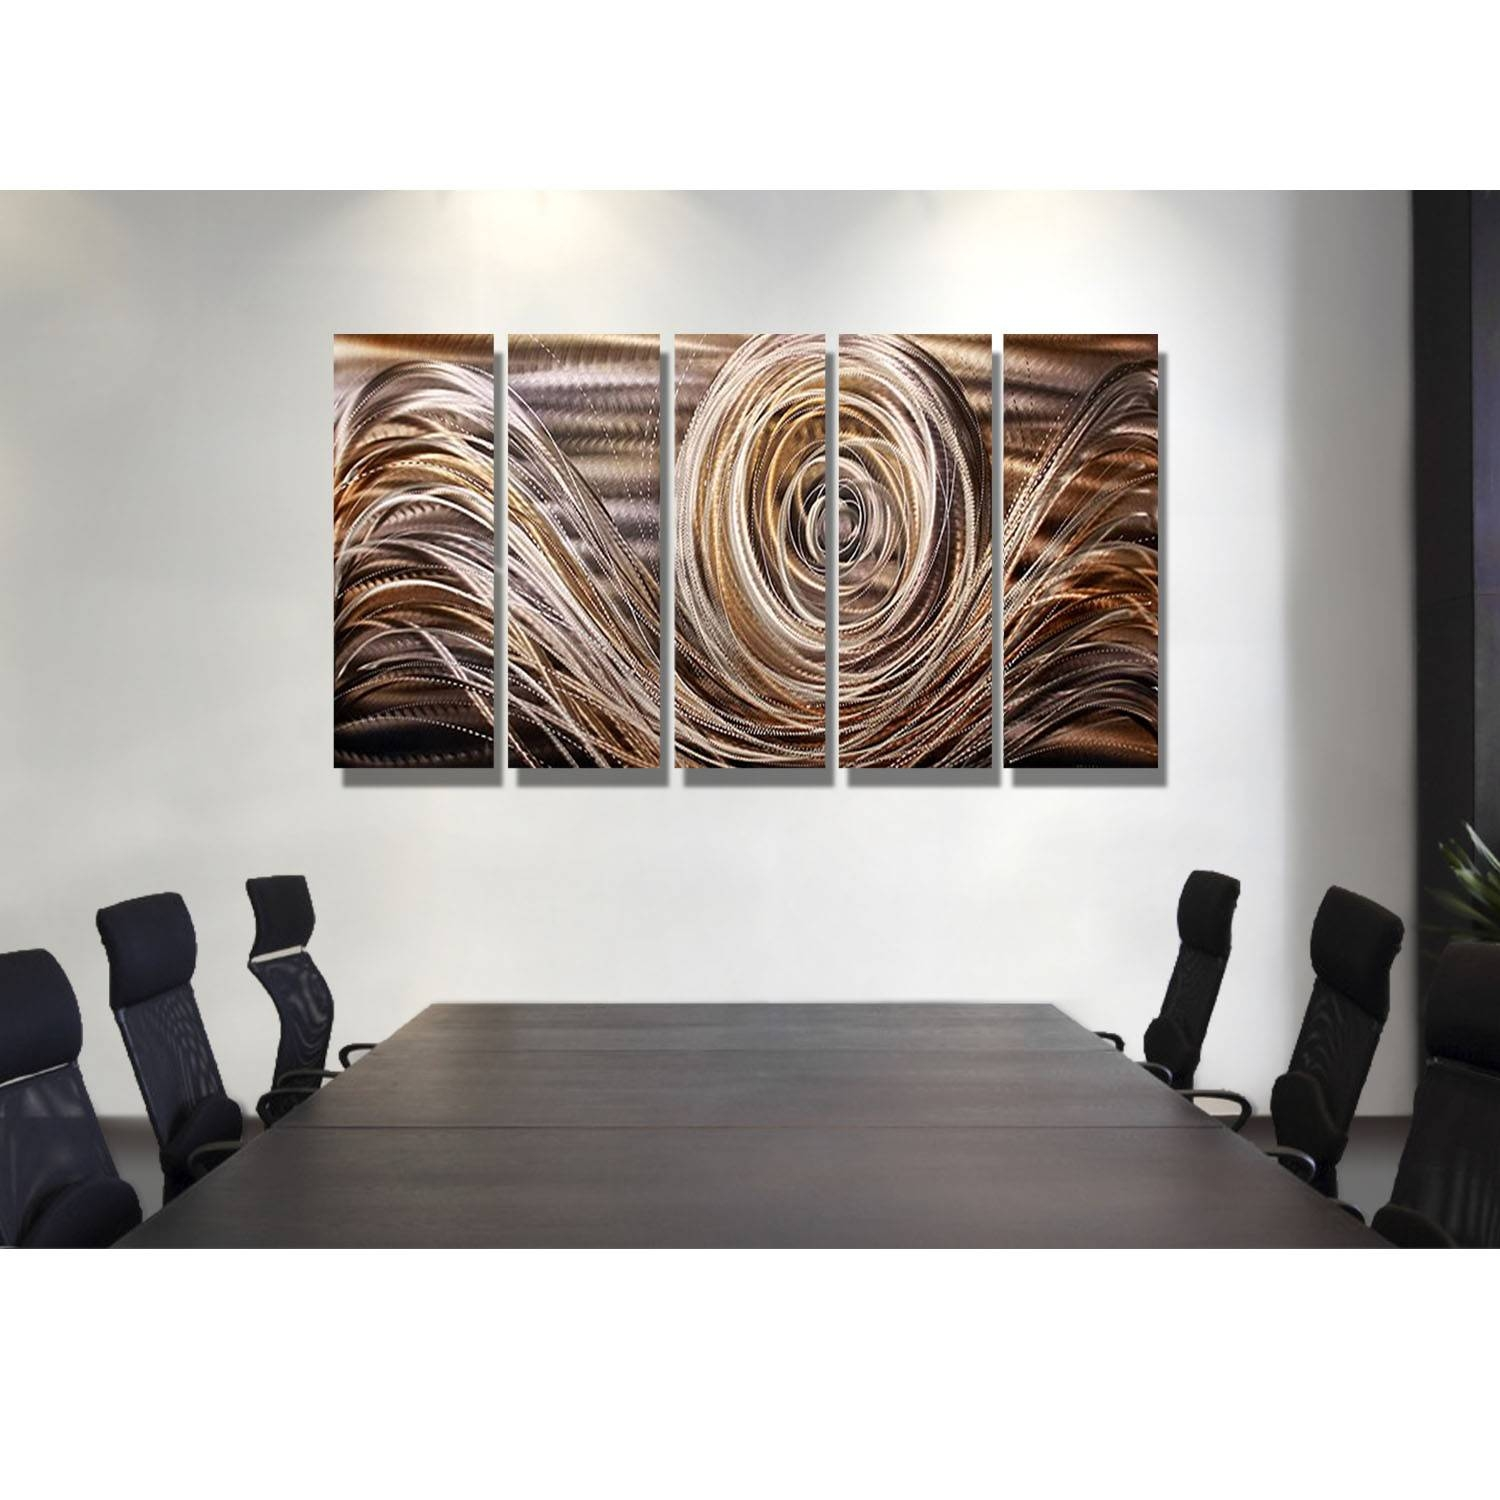 Mocha Swirl – Charcoal, Brown, Gold, And Silver Metal Wall Art – 5 Inside Current Swirl Metal Wall Art (View 3 of 20)